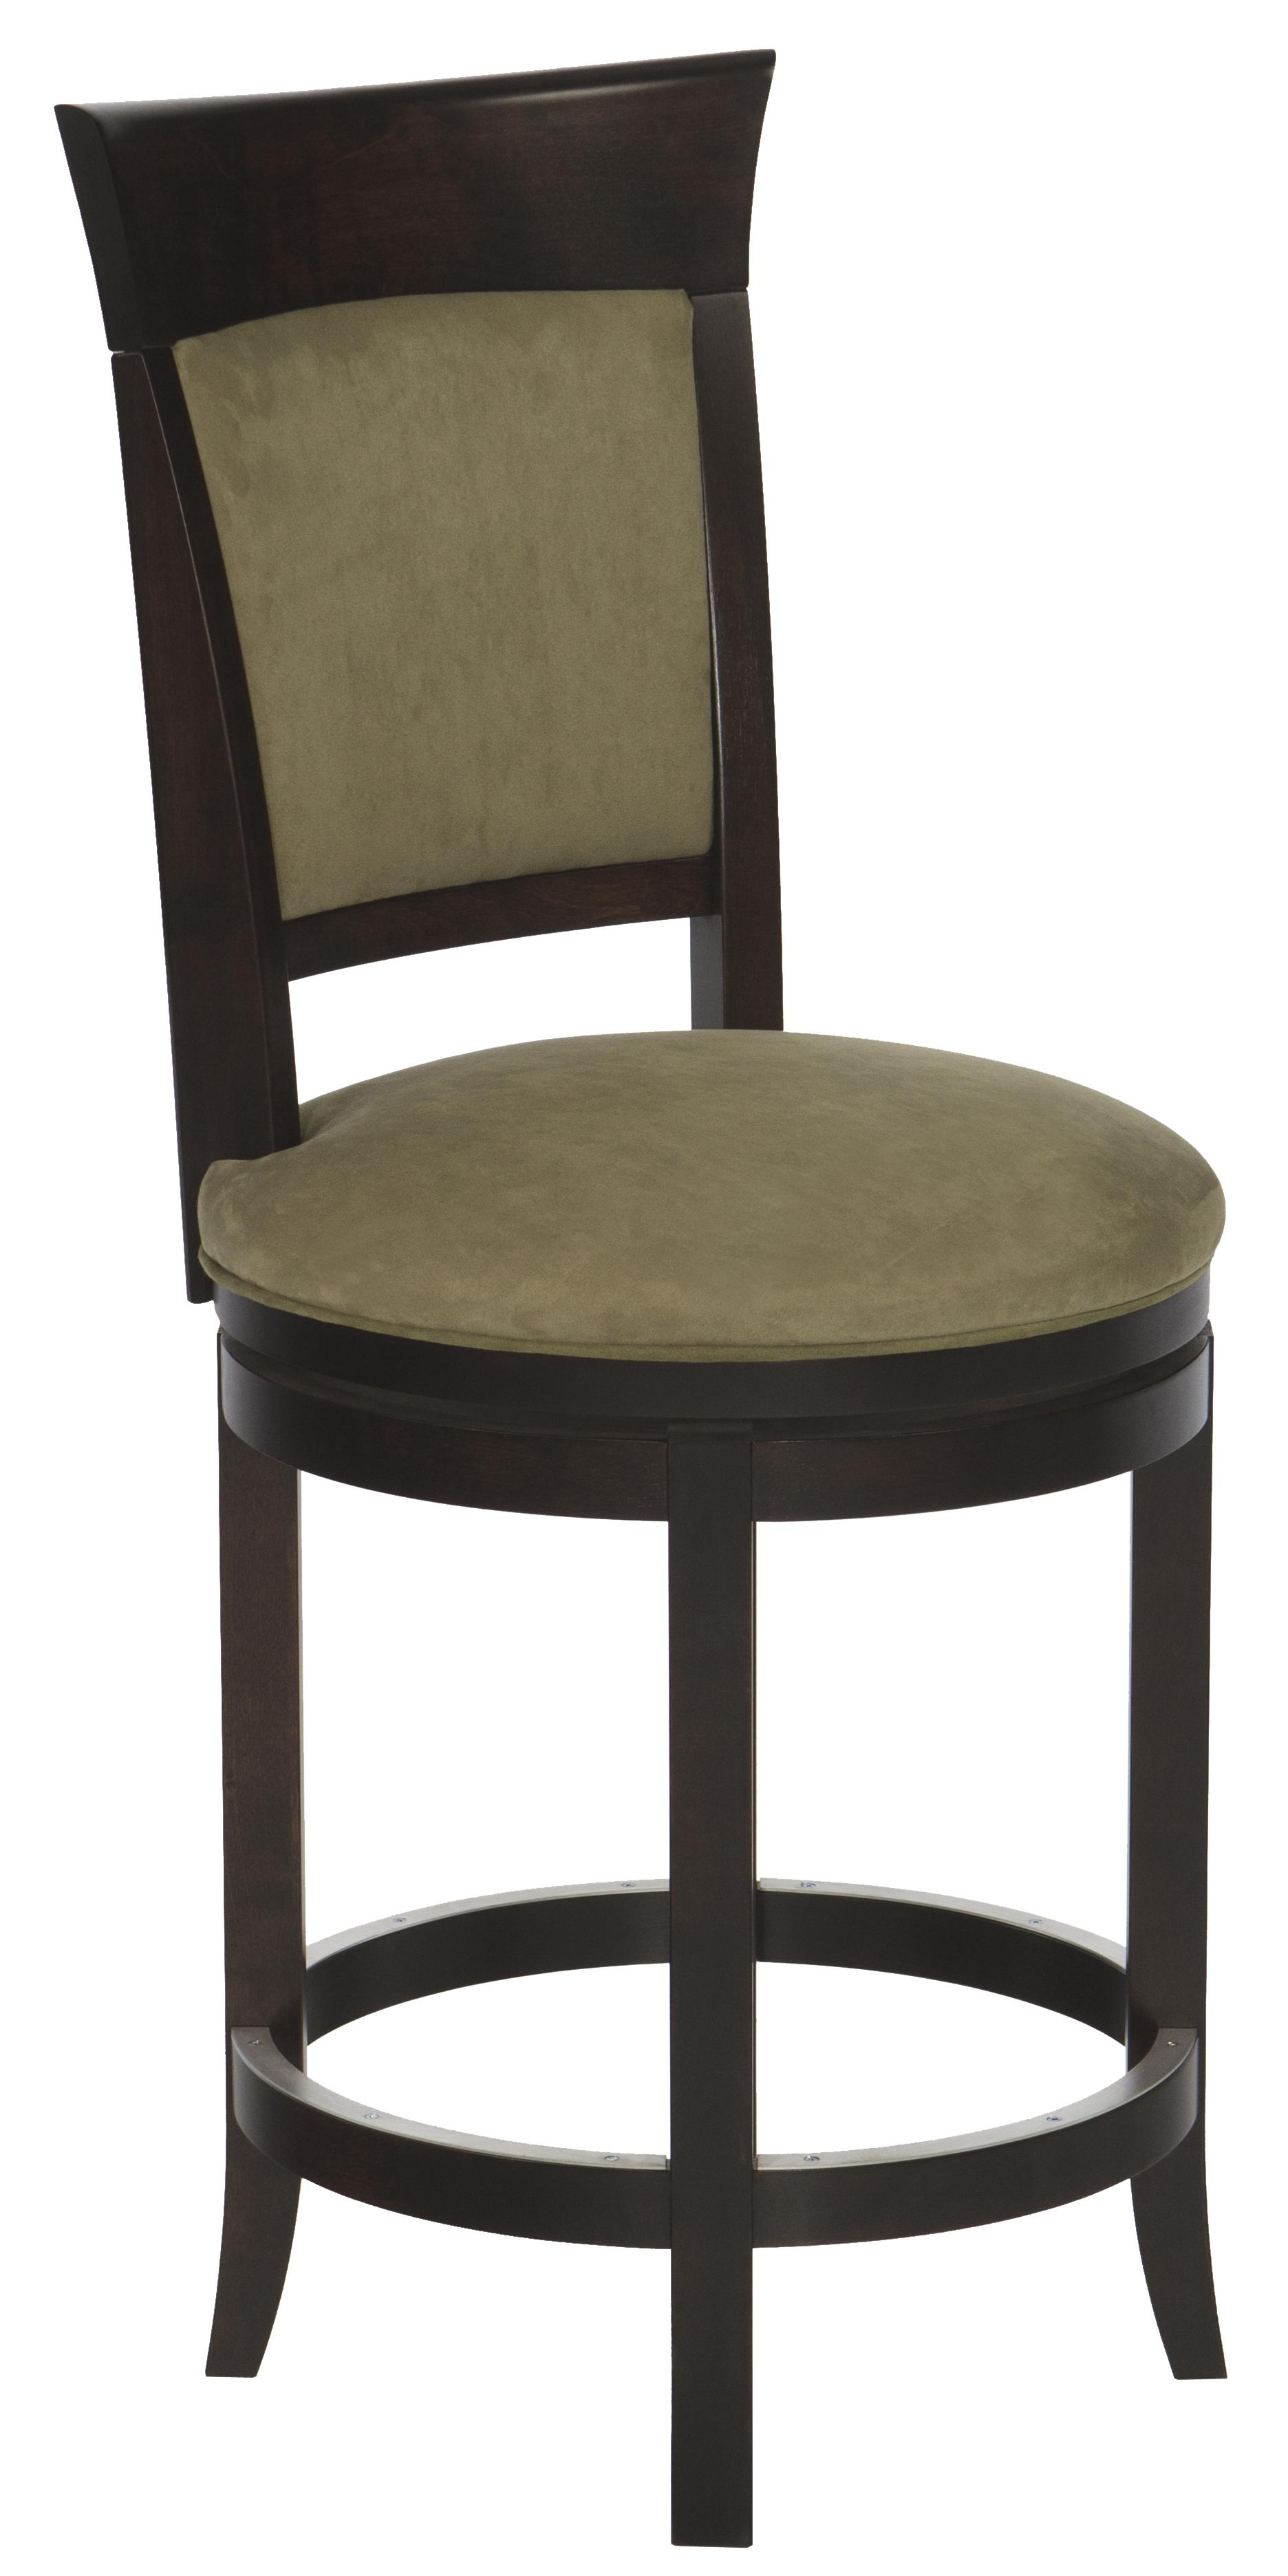 Canadel Bar Stools Customizable 24 Upholstered Swivel Stool Jacksonville Furniture Mart Bar